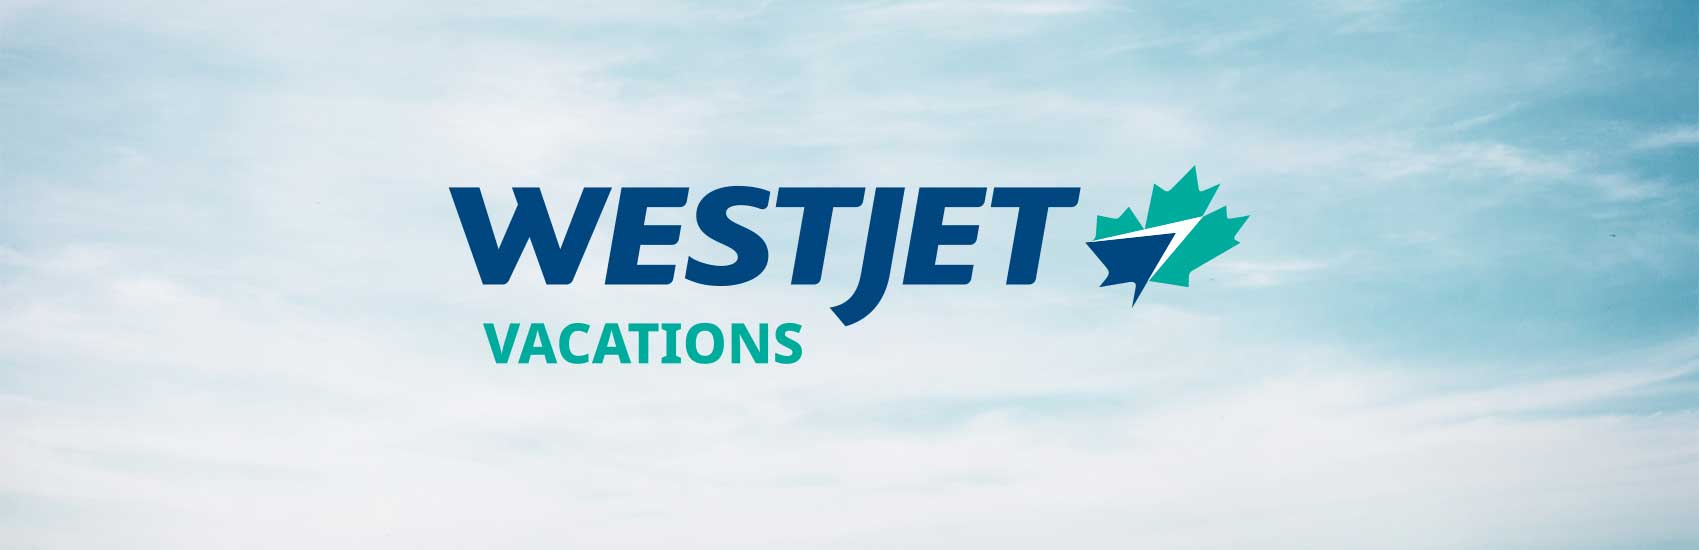 WestJet Vacations Page EBB 0